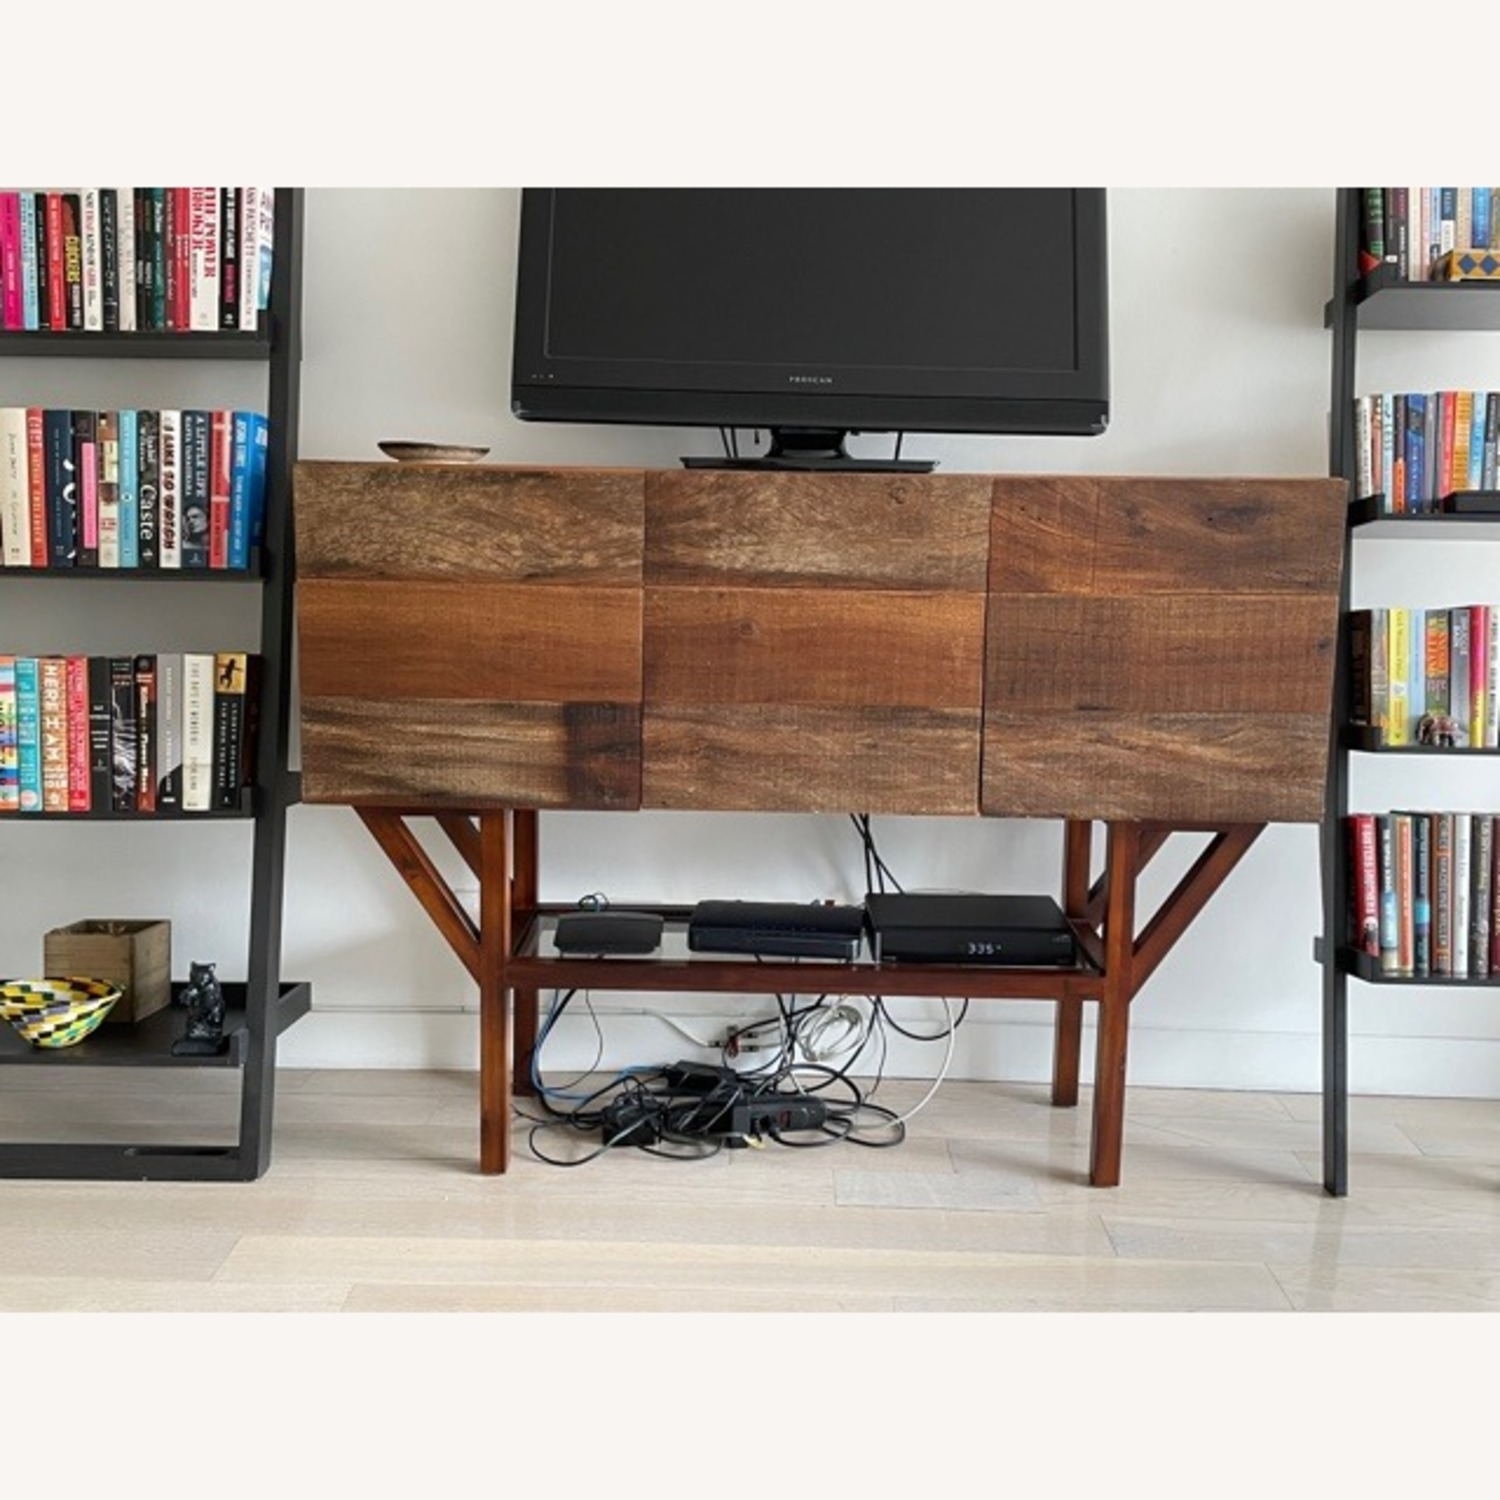 ABC Home Wood Media Table/Credenza/Dresser - image-2